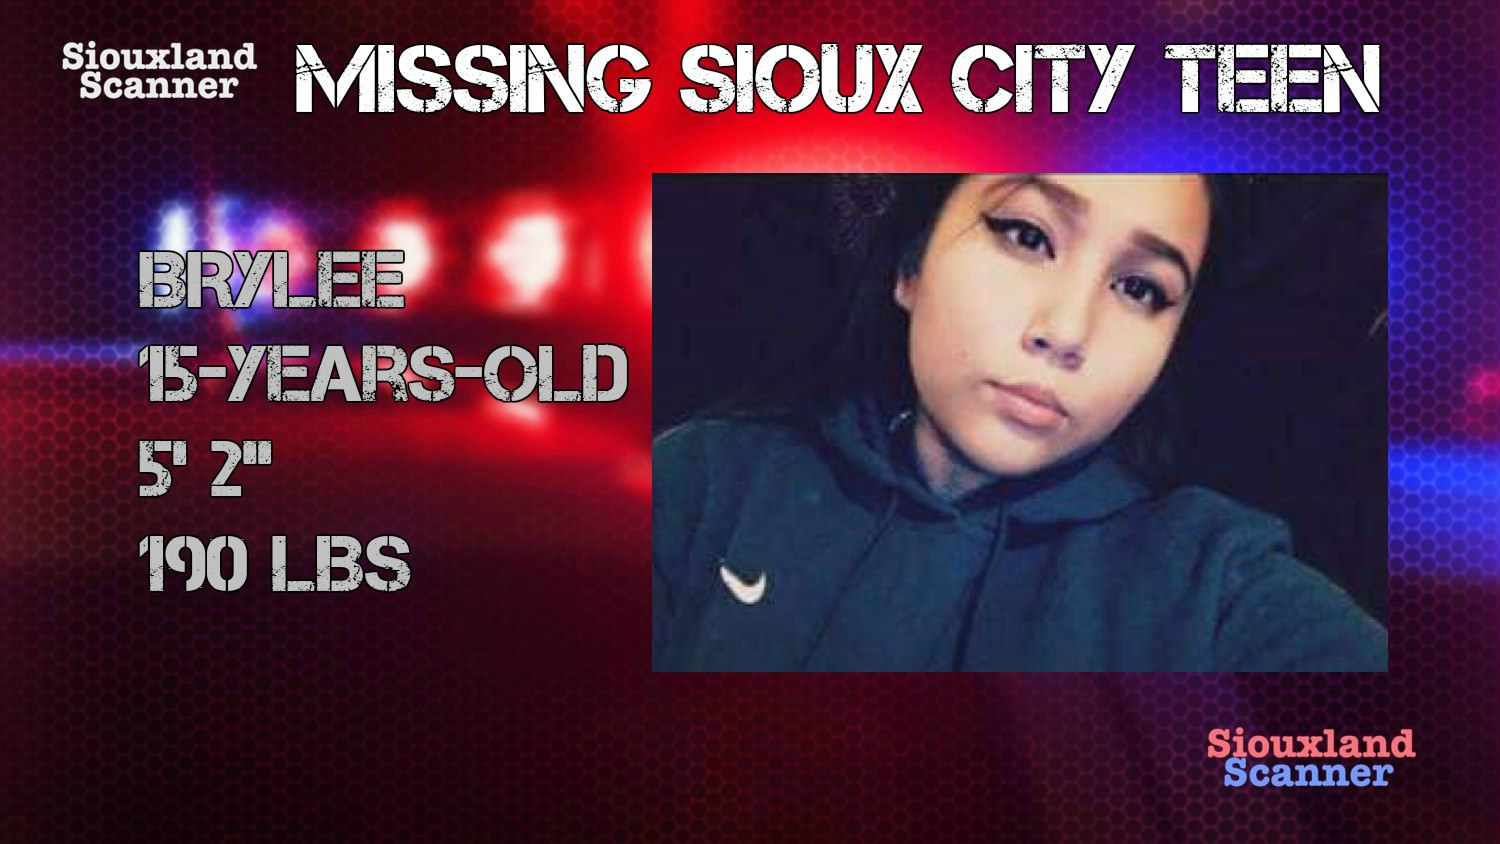 Have you seen this missing Sioux City Teen